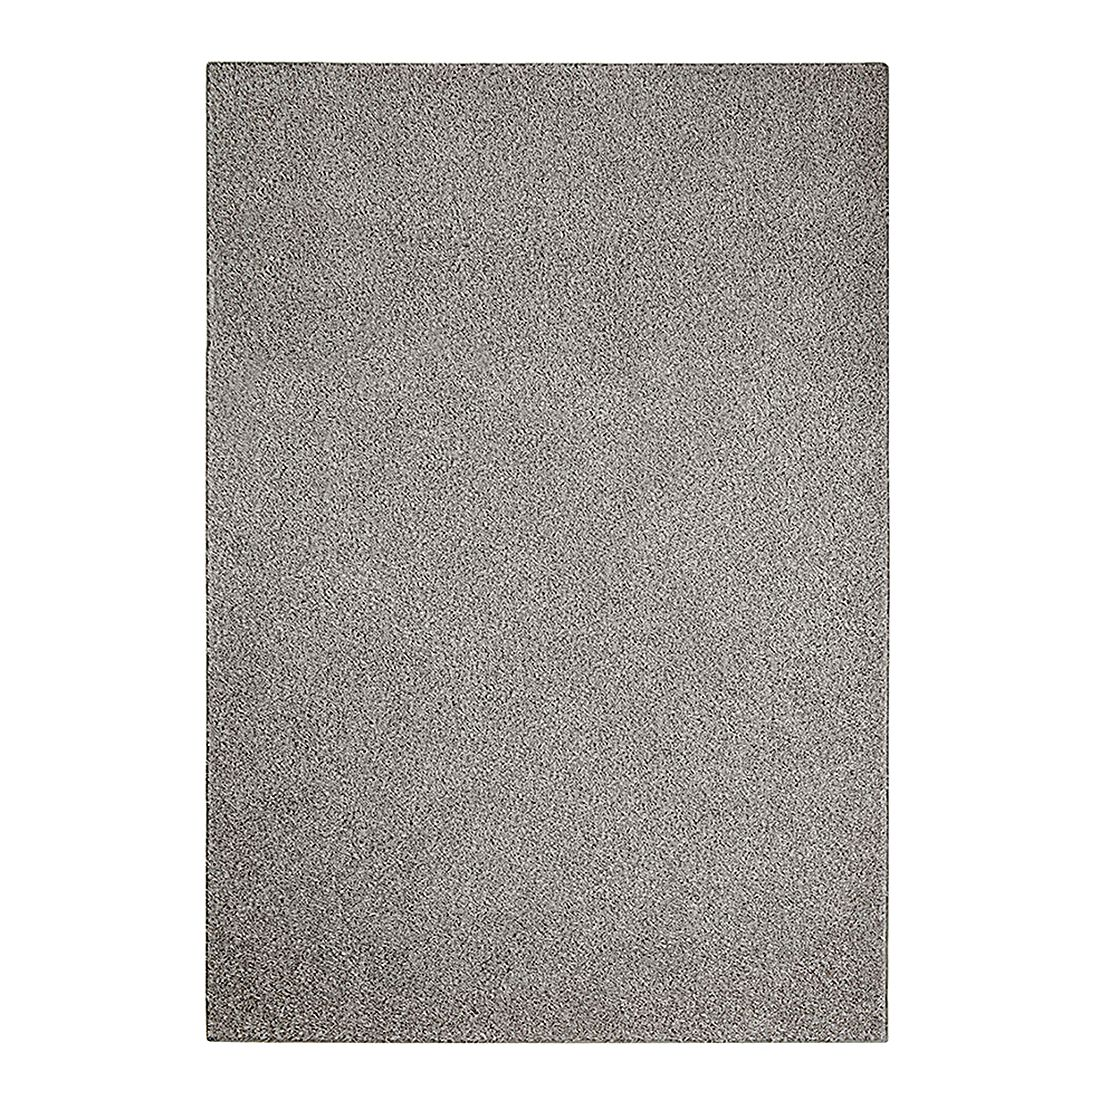 Outdoorteppich b.b Miami Style – Dolphin Grey – 200 x 200 cm, barbara becker home passion günstig